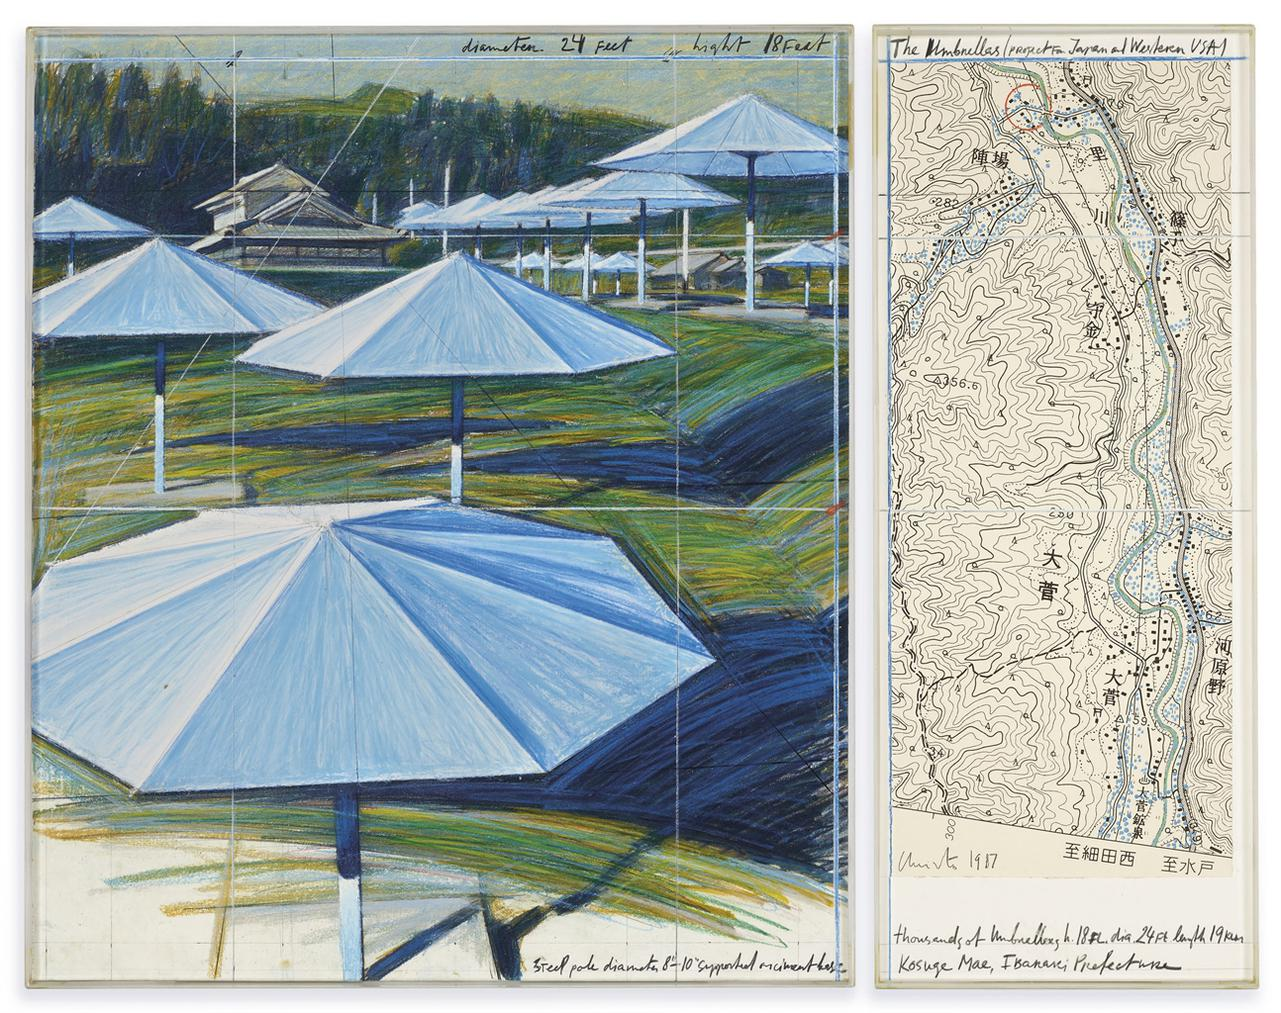 Christo and Jeanne-Claude-The Umbrellas (Project For Japan And Western Usa)-1987